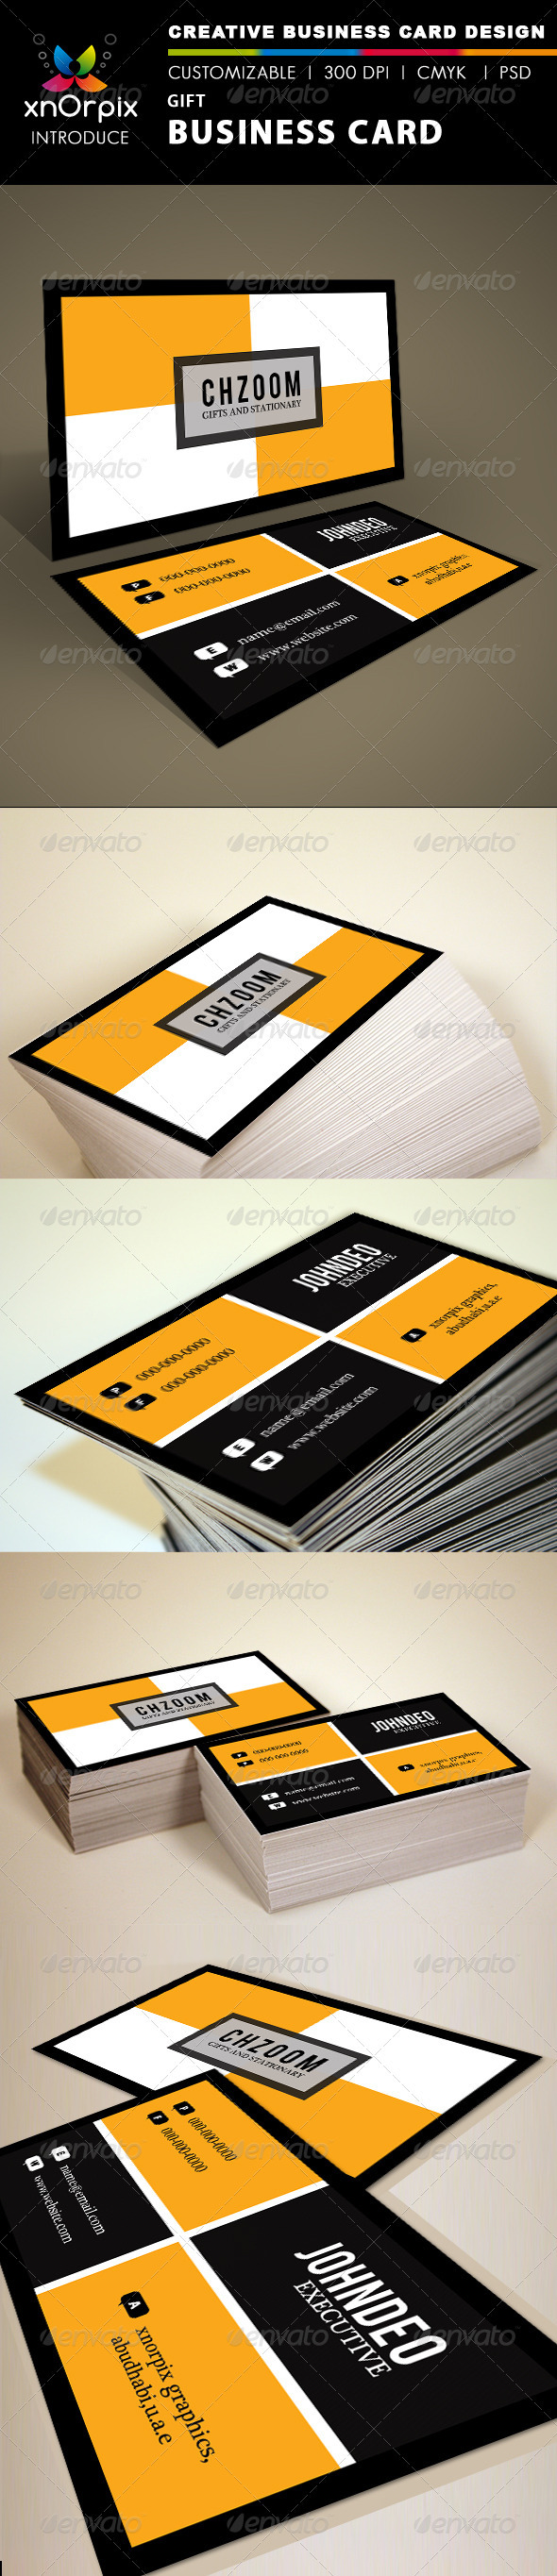 GraphicRiver Gift Business Card 1499014